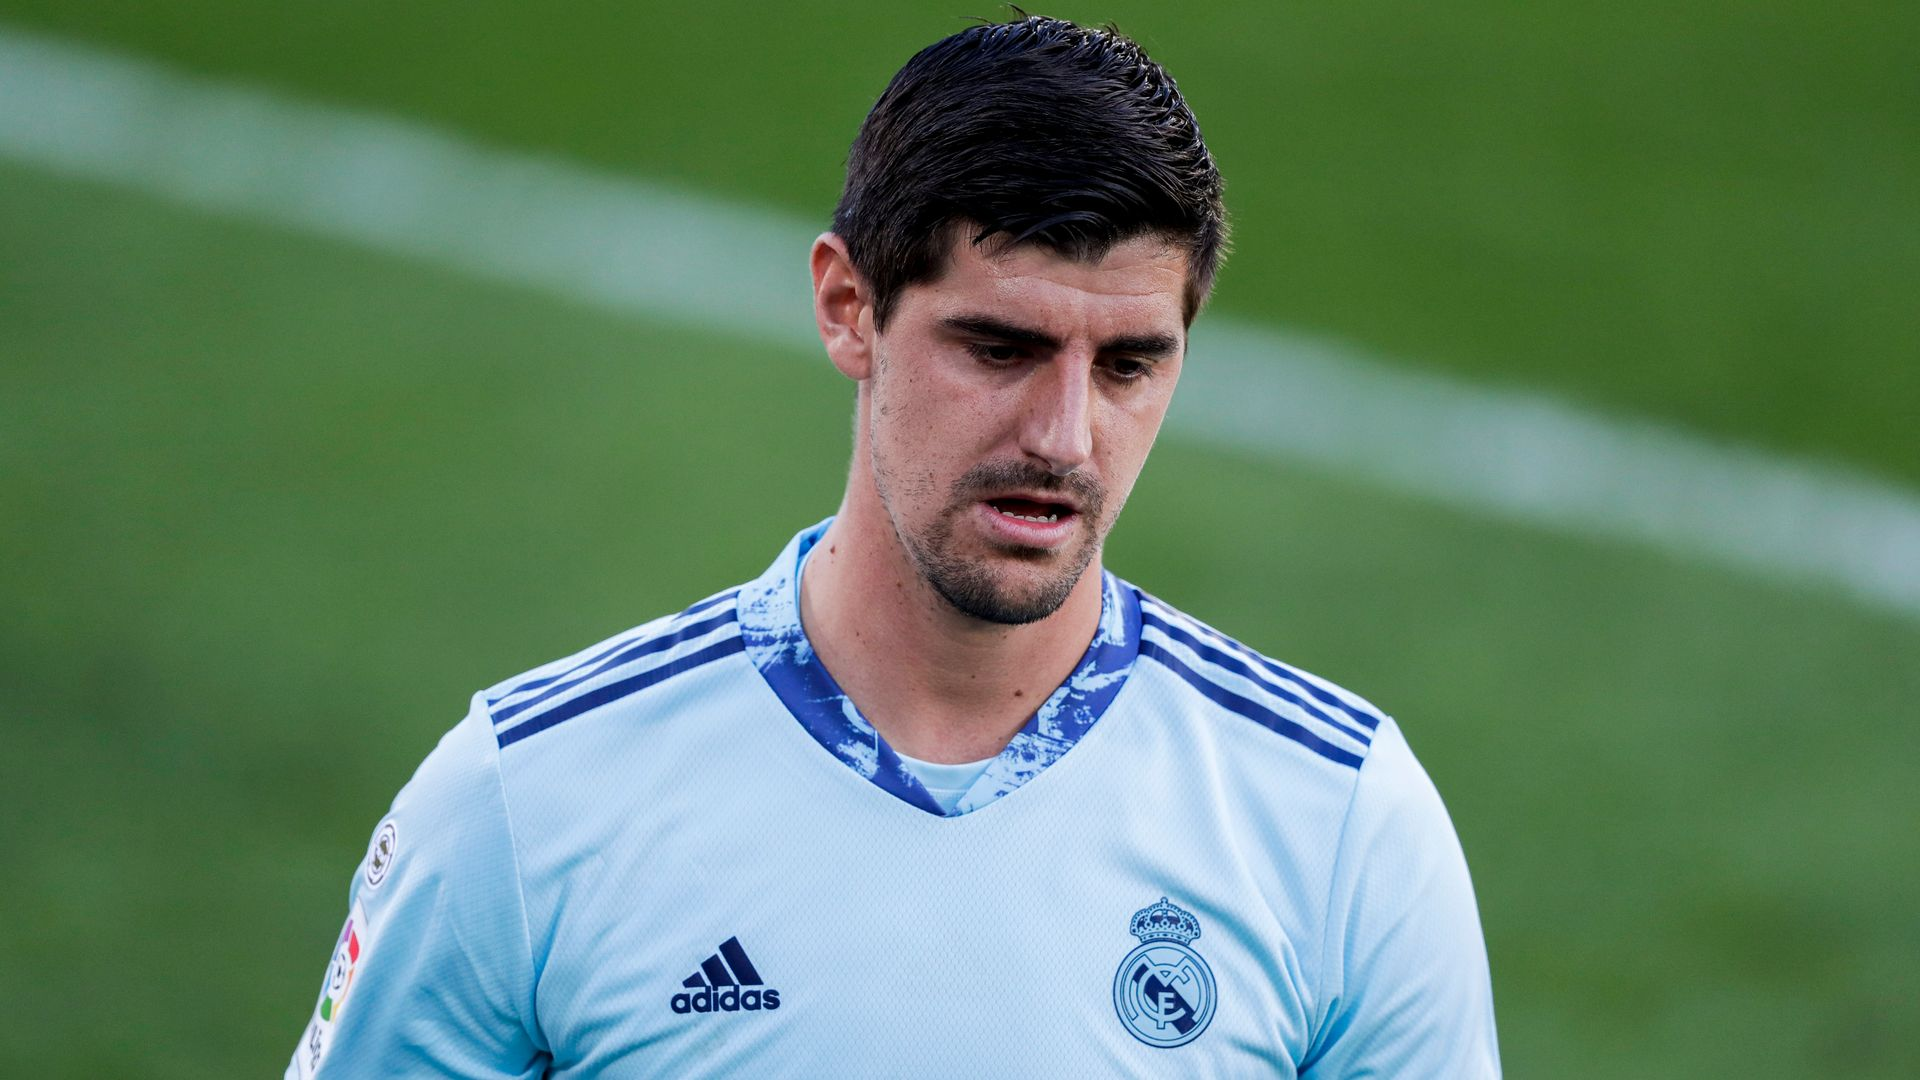 Courtois leaves Belgium camp ahead of England game